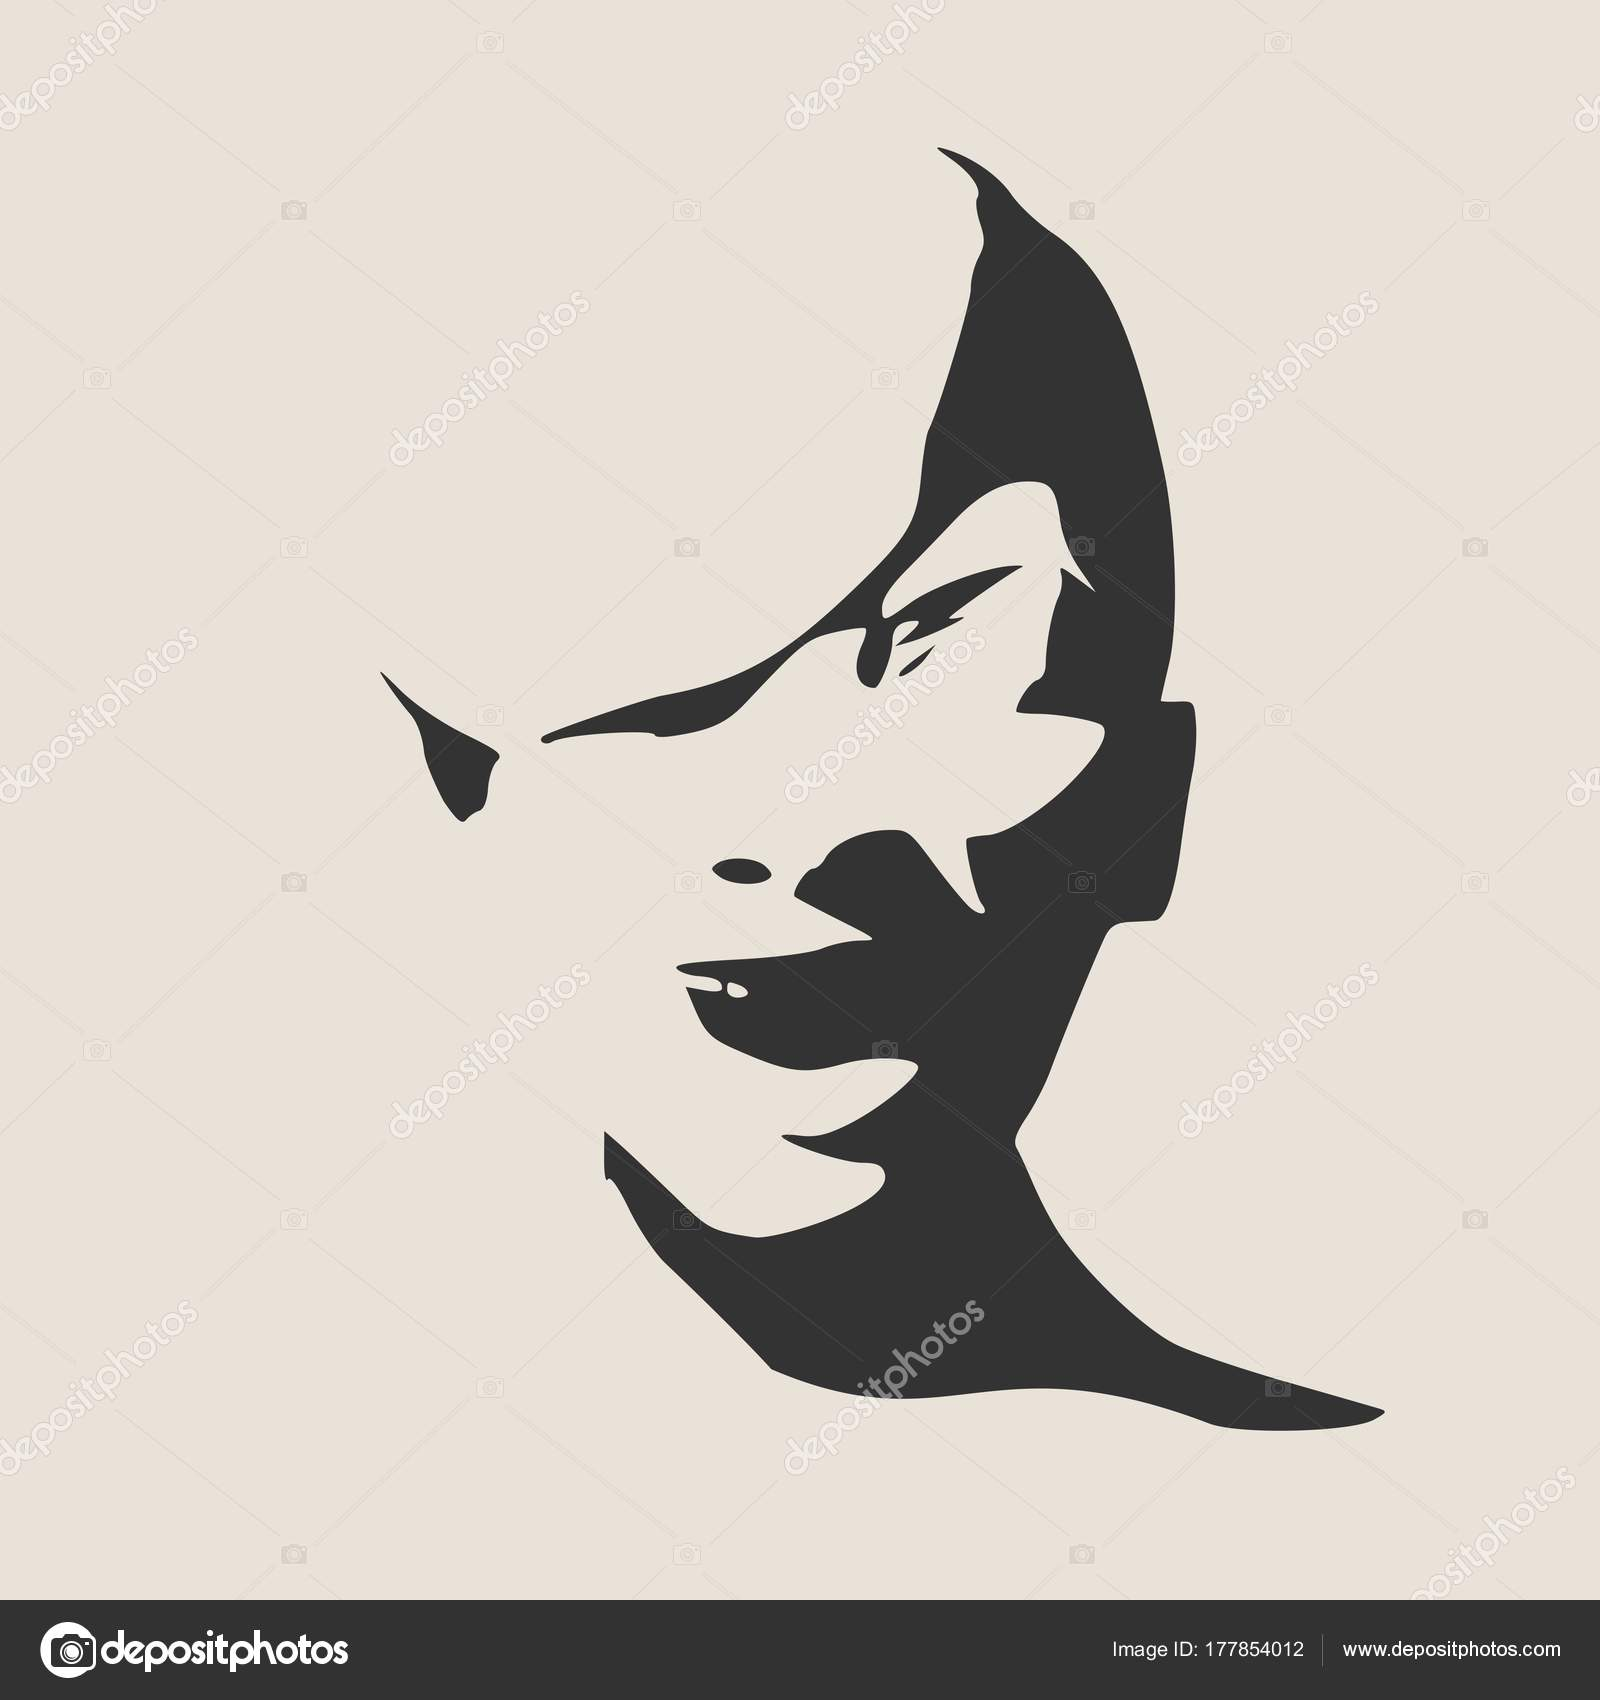 silhouette of a female head stock vector jegas ra 177854012